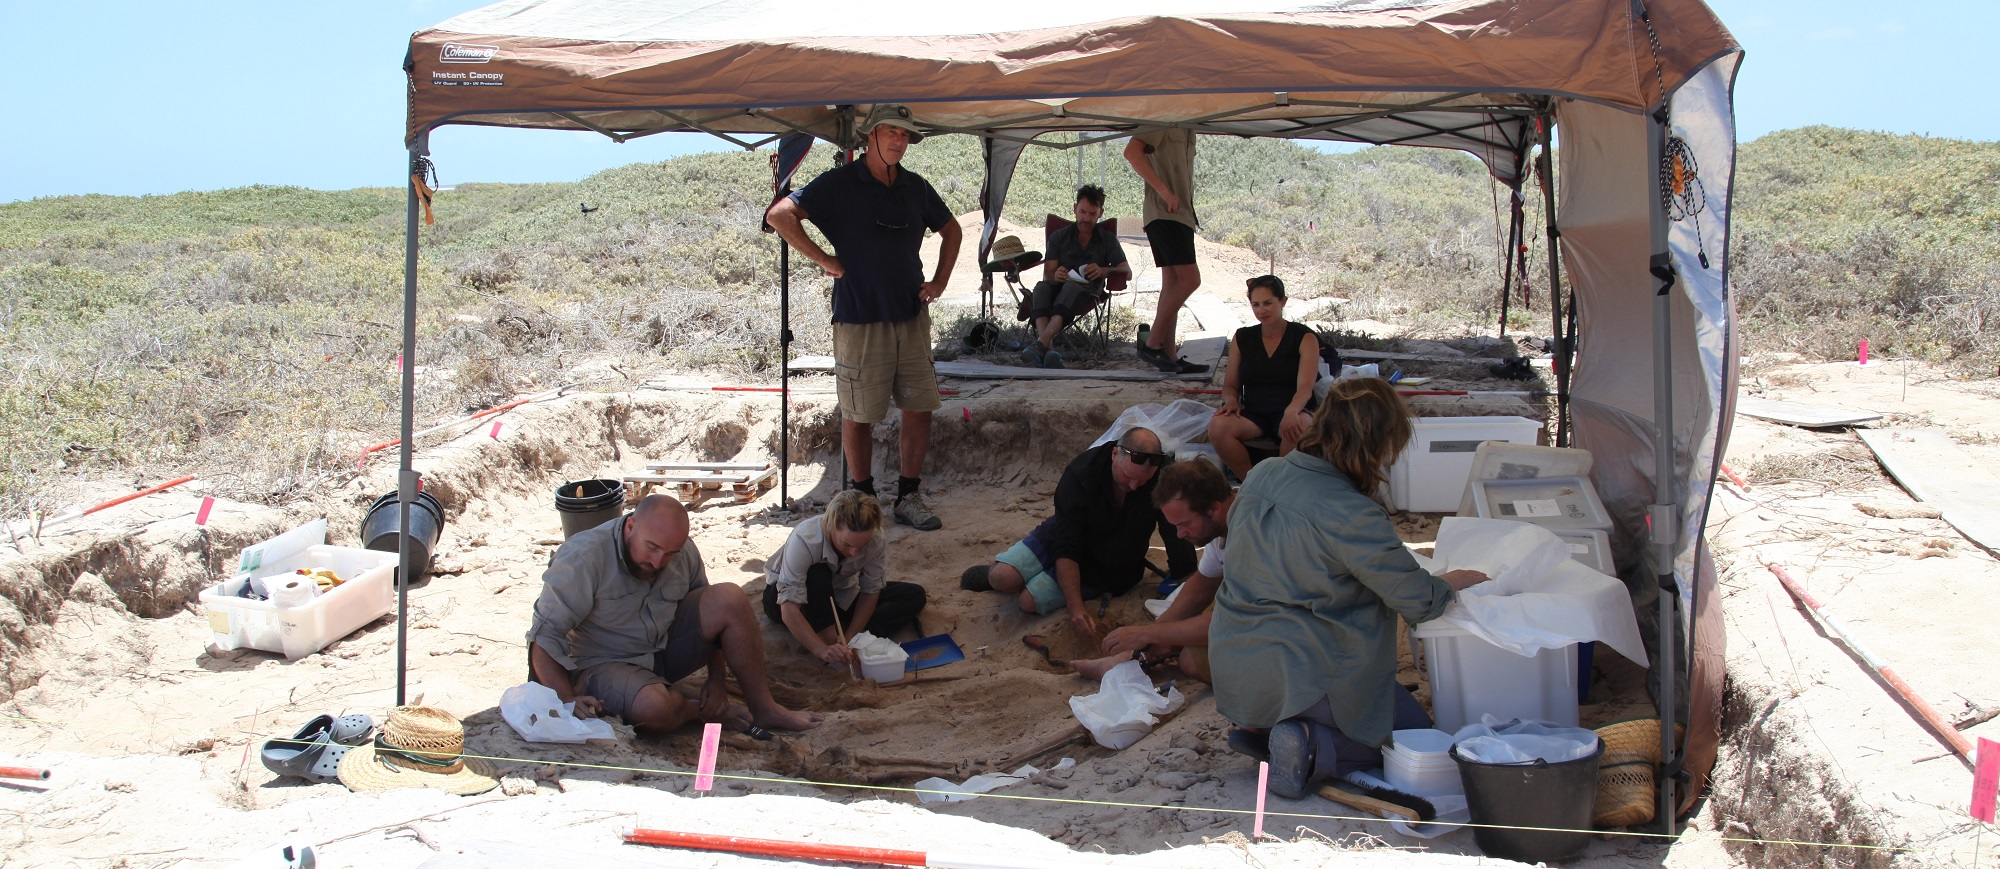 Dutch and Australian pathologists and archaeologists at work on Beacon island, aka Batavia's graveyard (photo Alistair Paterson)